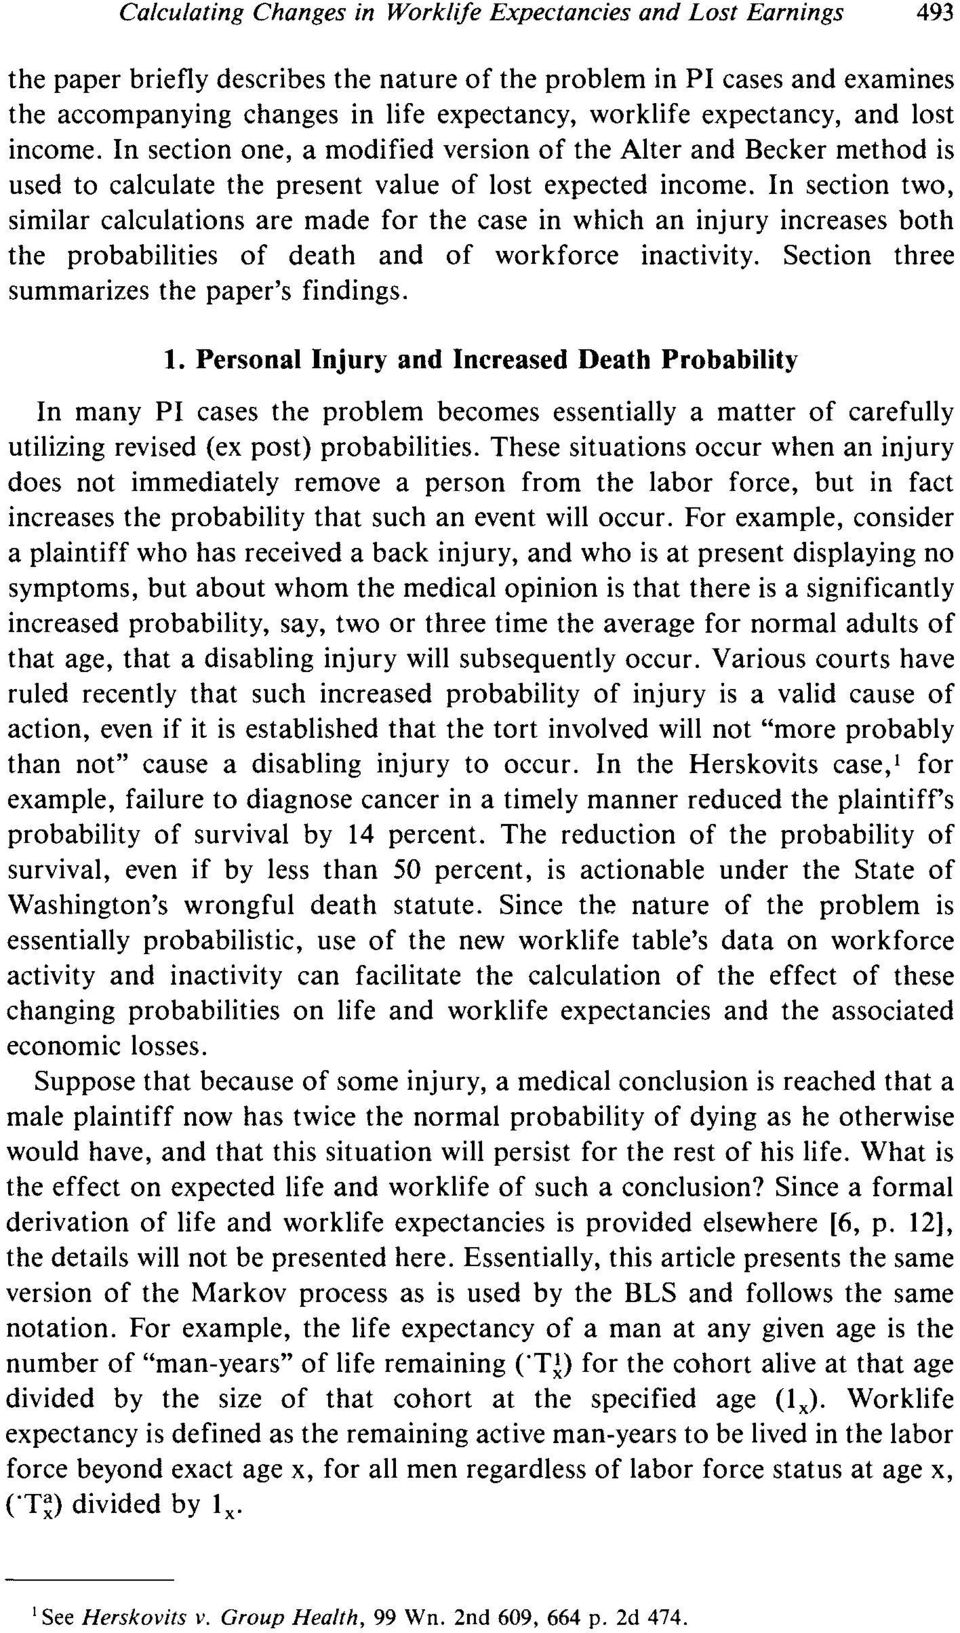 In section two, similar calculations are made for the case in which an injury increases both the probabilities of death and of workforce inactivity. Section three summarizes the paper's findings. 1.